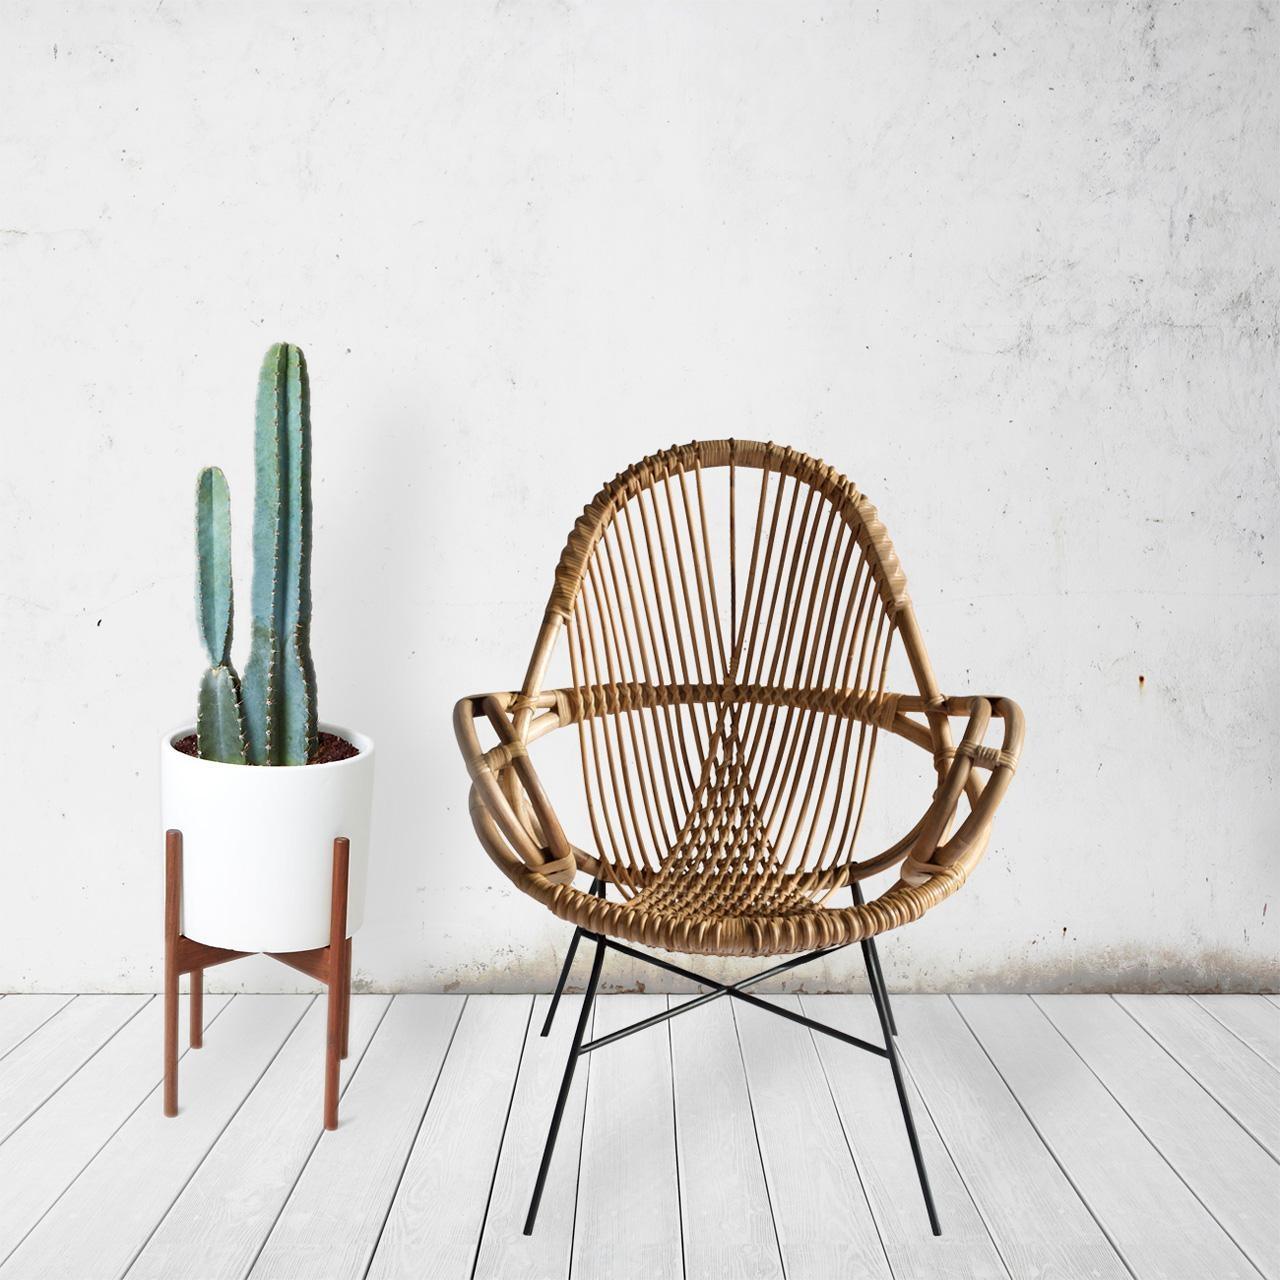 Modern Handwoven Rattan Chairs From Wend – Design Milk With Modern Rattan Sofas (Image 10 of 23)